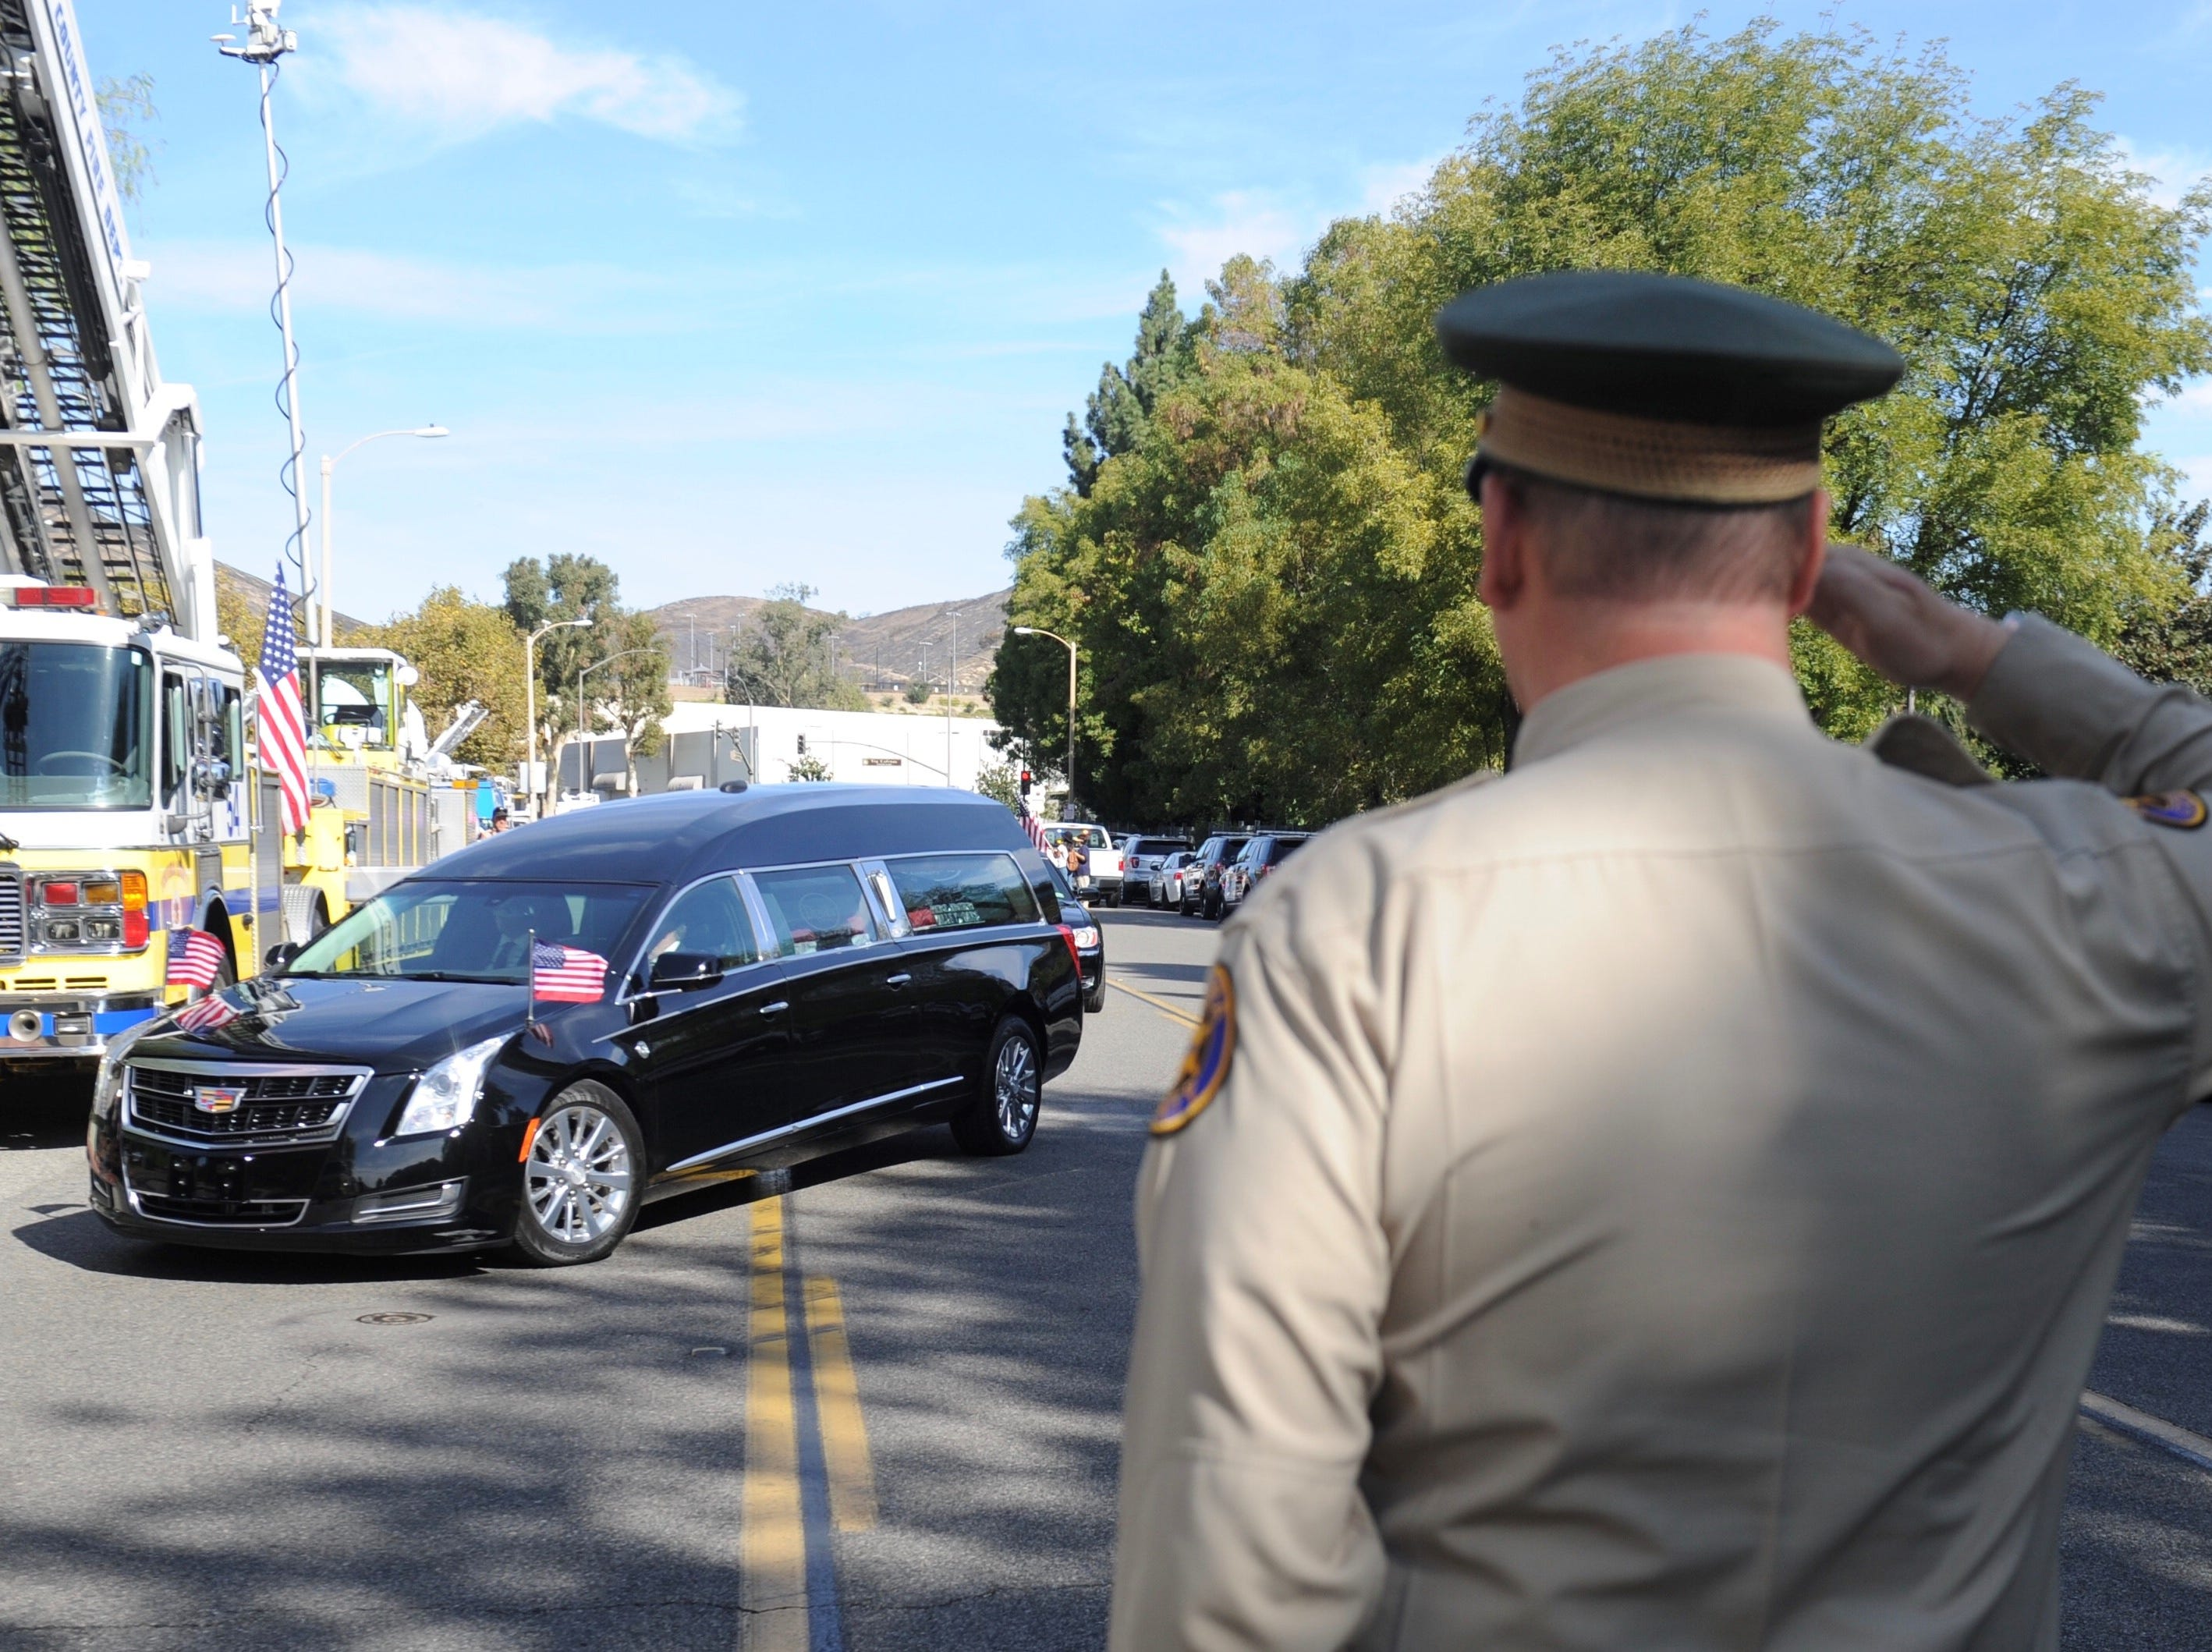 The hearse bearing the body of Ventura County Sheriff's Office Sgt. Ron Helus arrives Thursday at Calvary Community Church in Westlake Village.